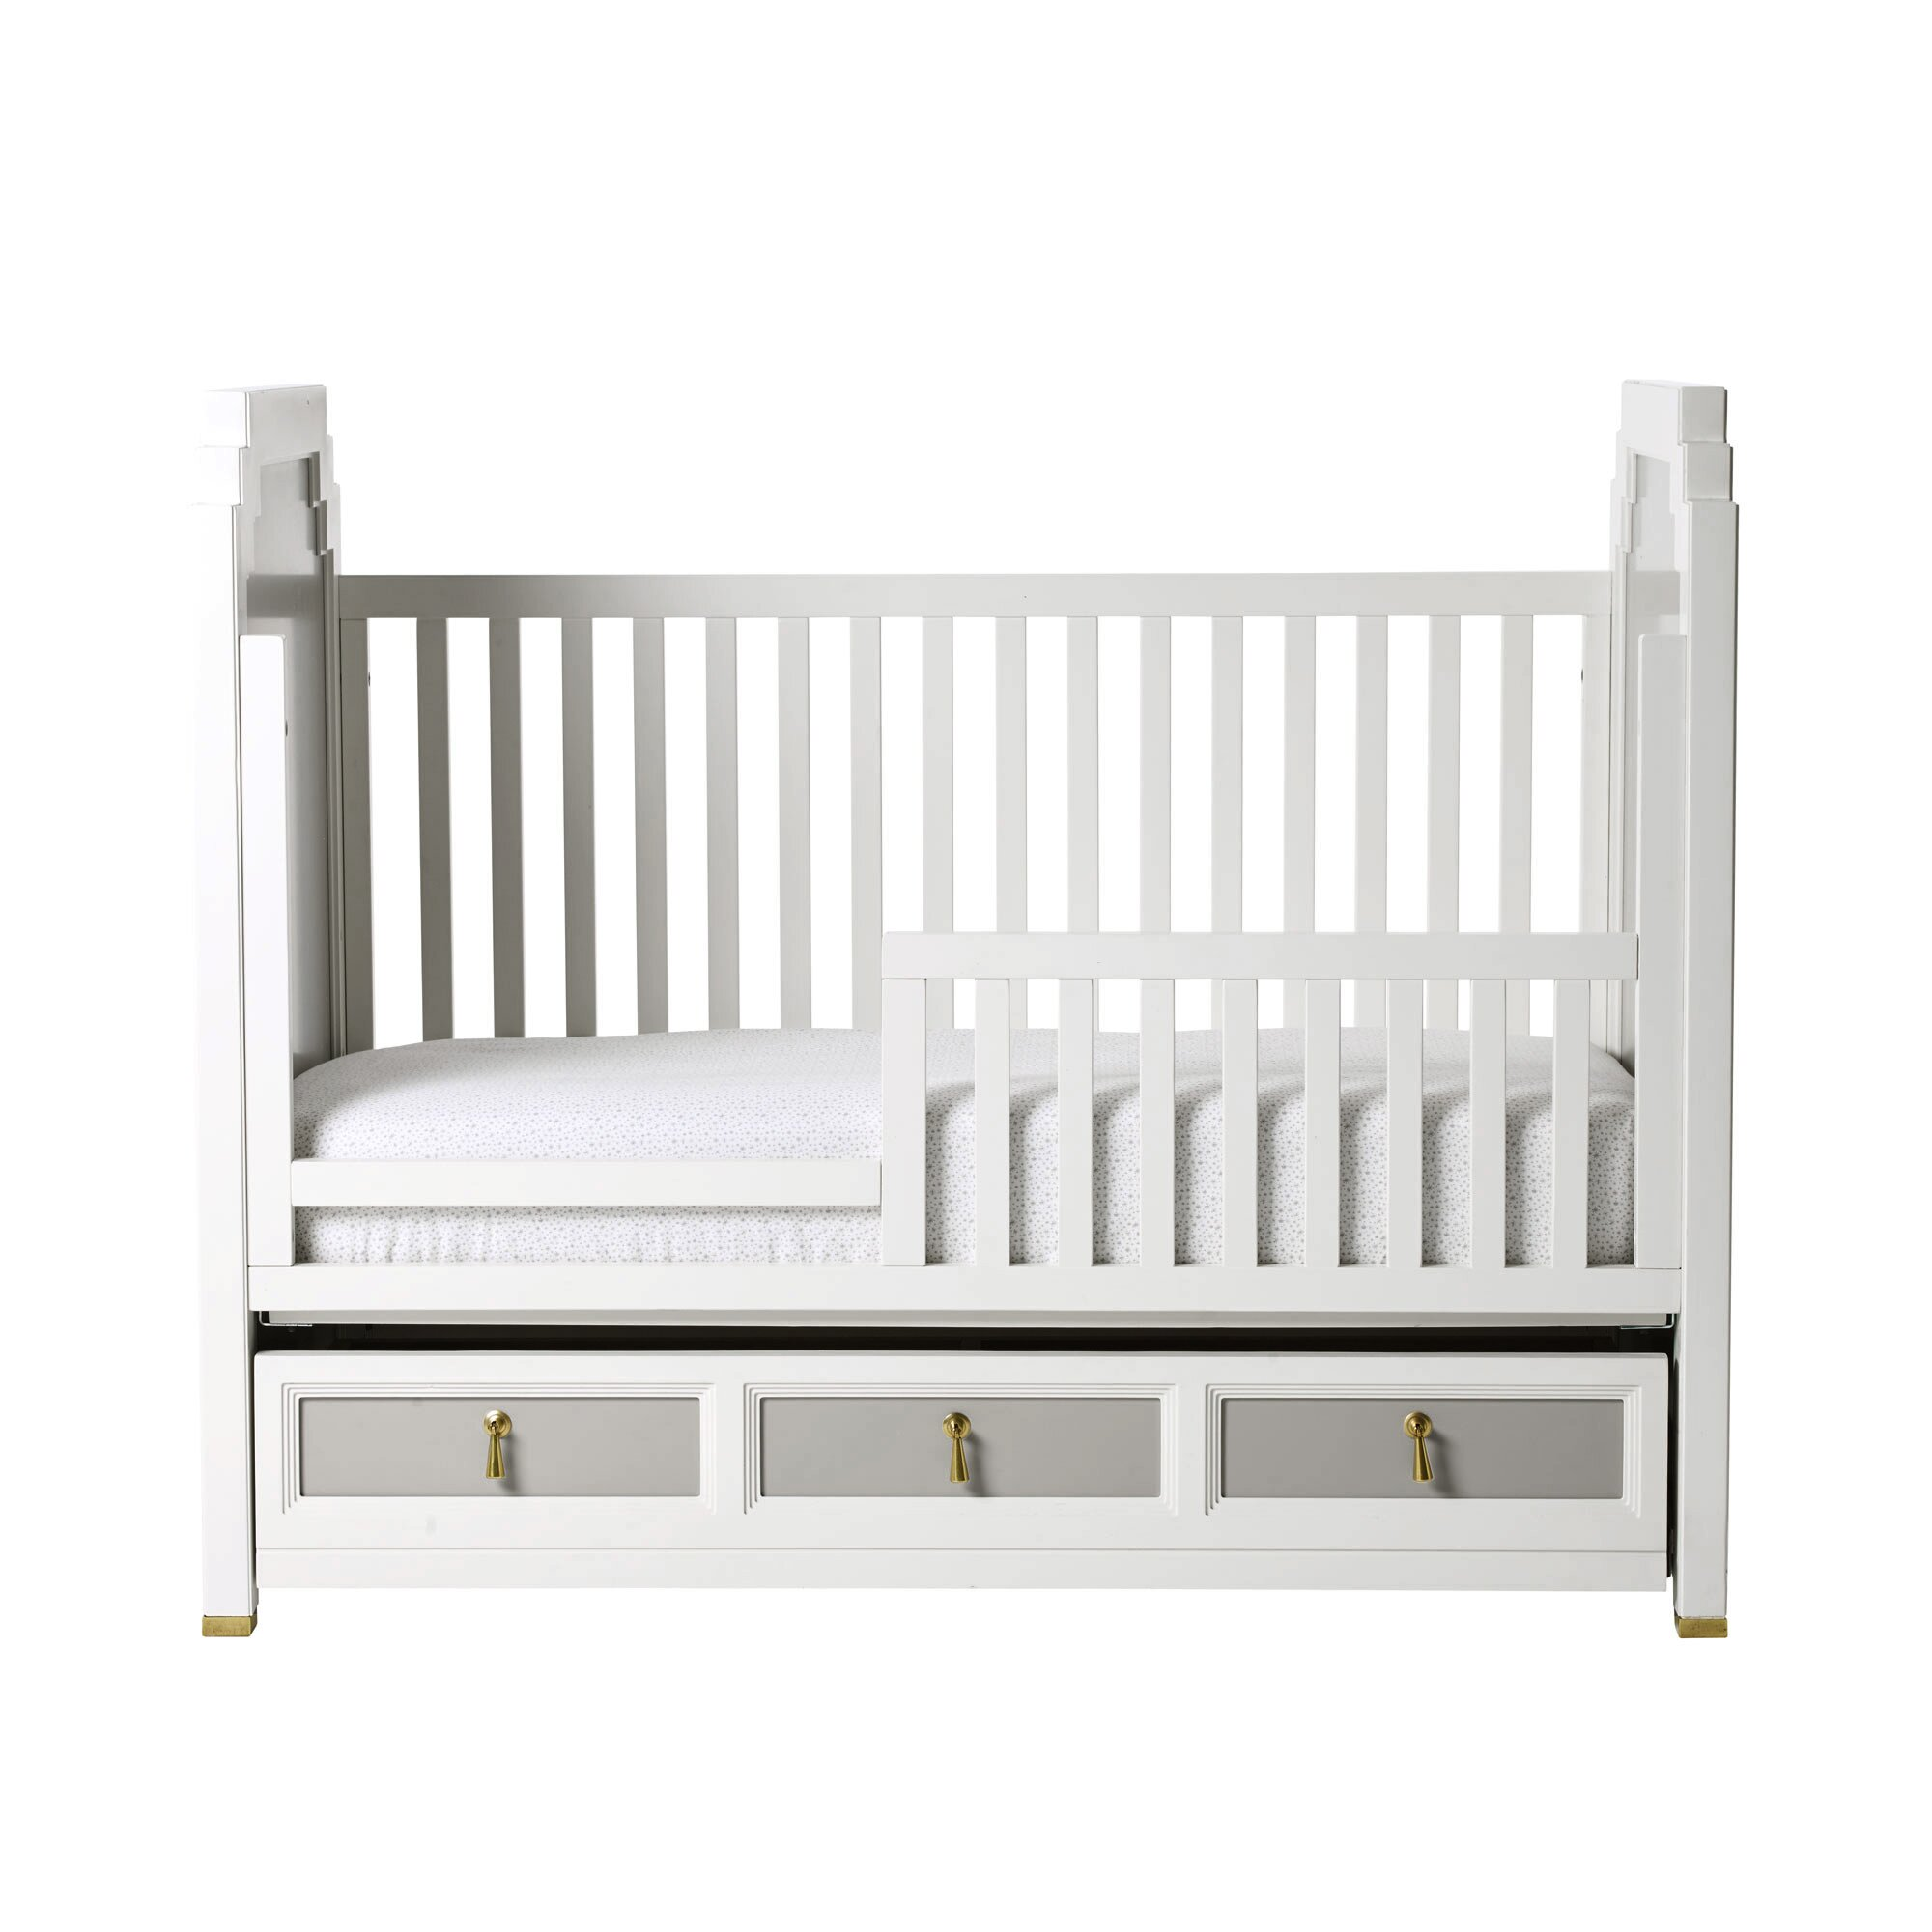 dwellstudio vanderbilt 2 in 1 convertible crib reviews